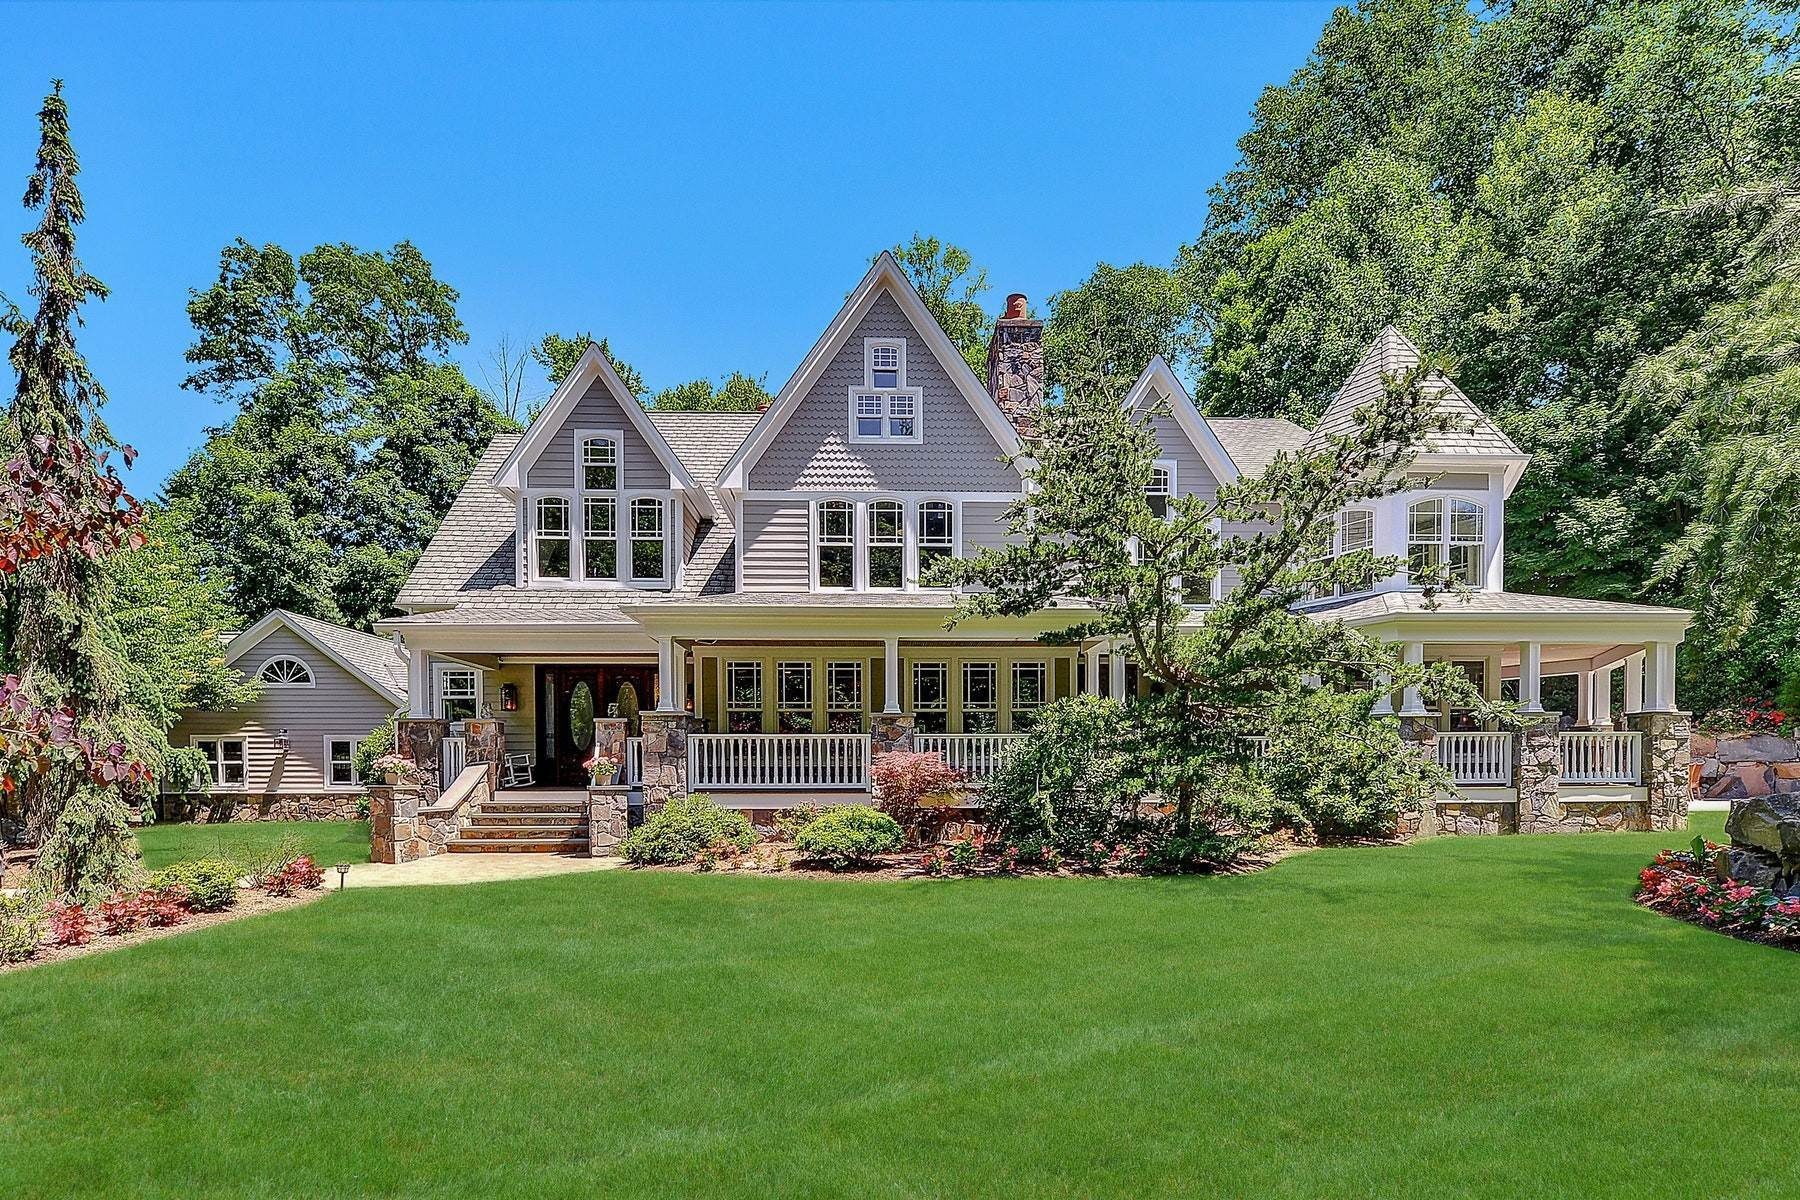 Single Family Homes for Sale at STUNNING COUNTRY FARMHOUSE 284 E Saddle River Rd. Upper Saddle River, New Jersey 07458 United States